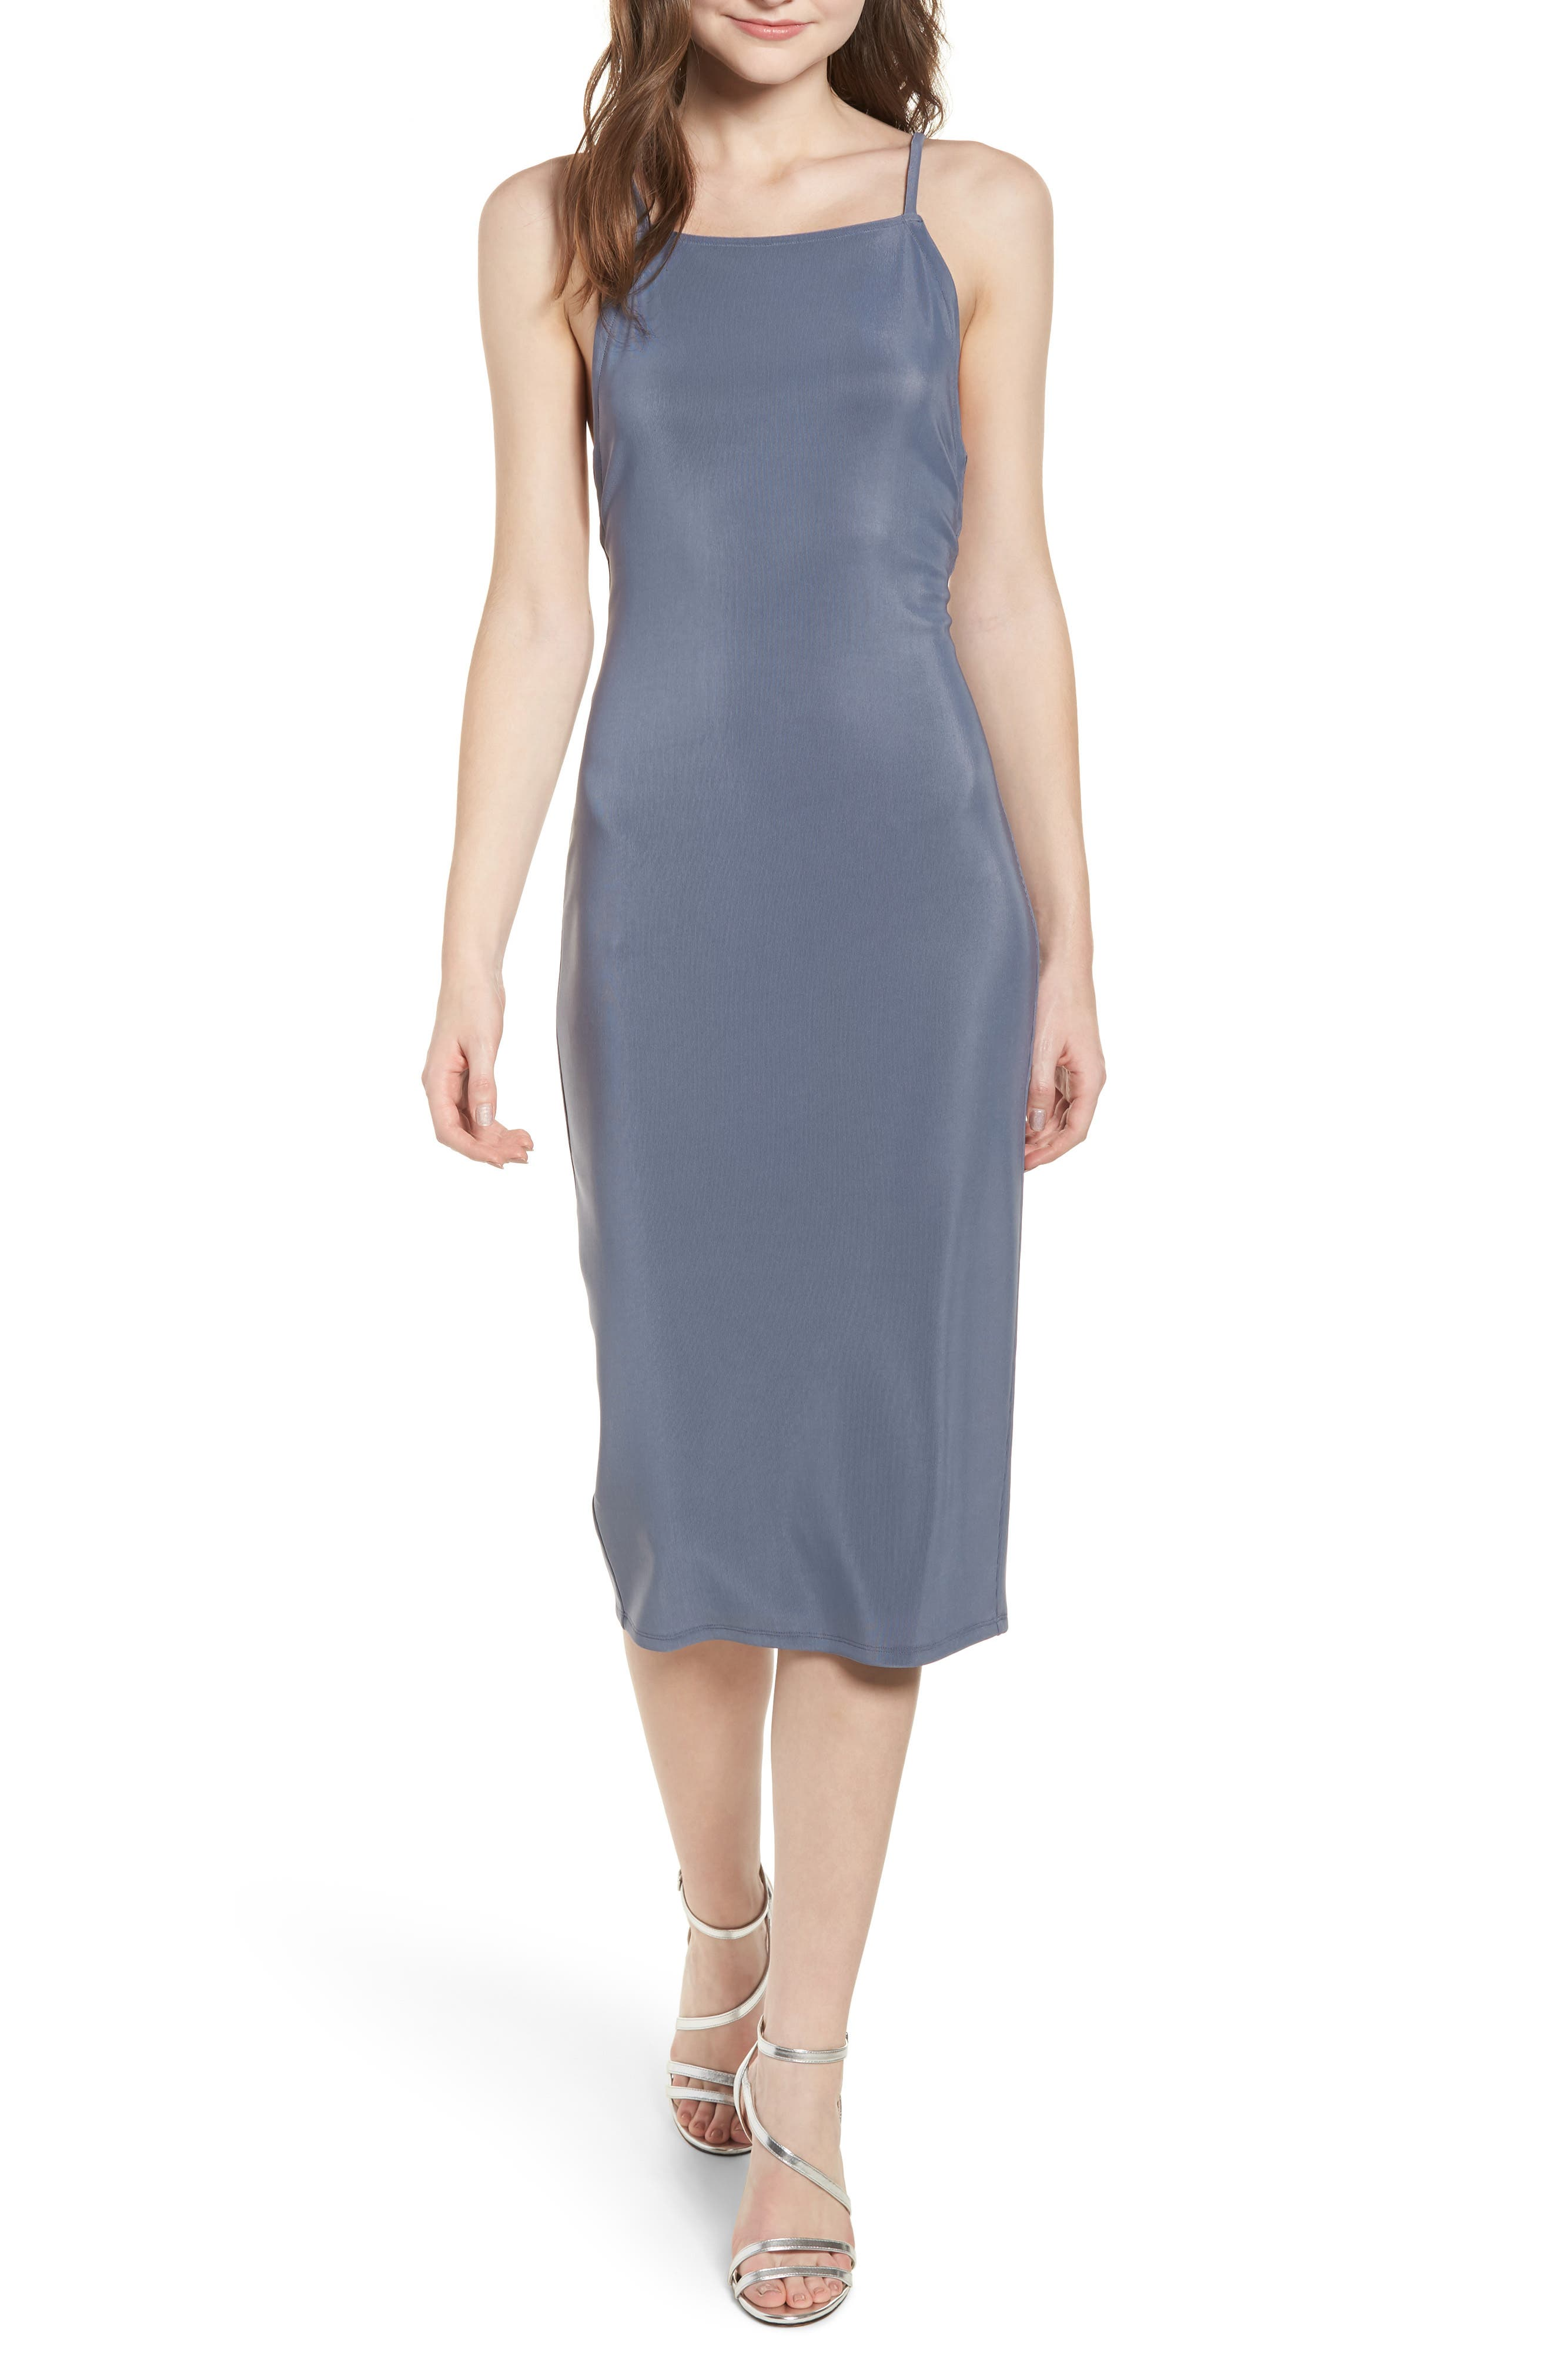 Strappy Bodycon Dress,                             Main thumbnail 1, color,                             Grey Grisaille